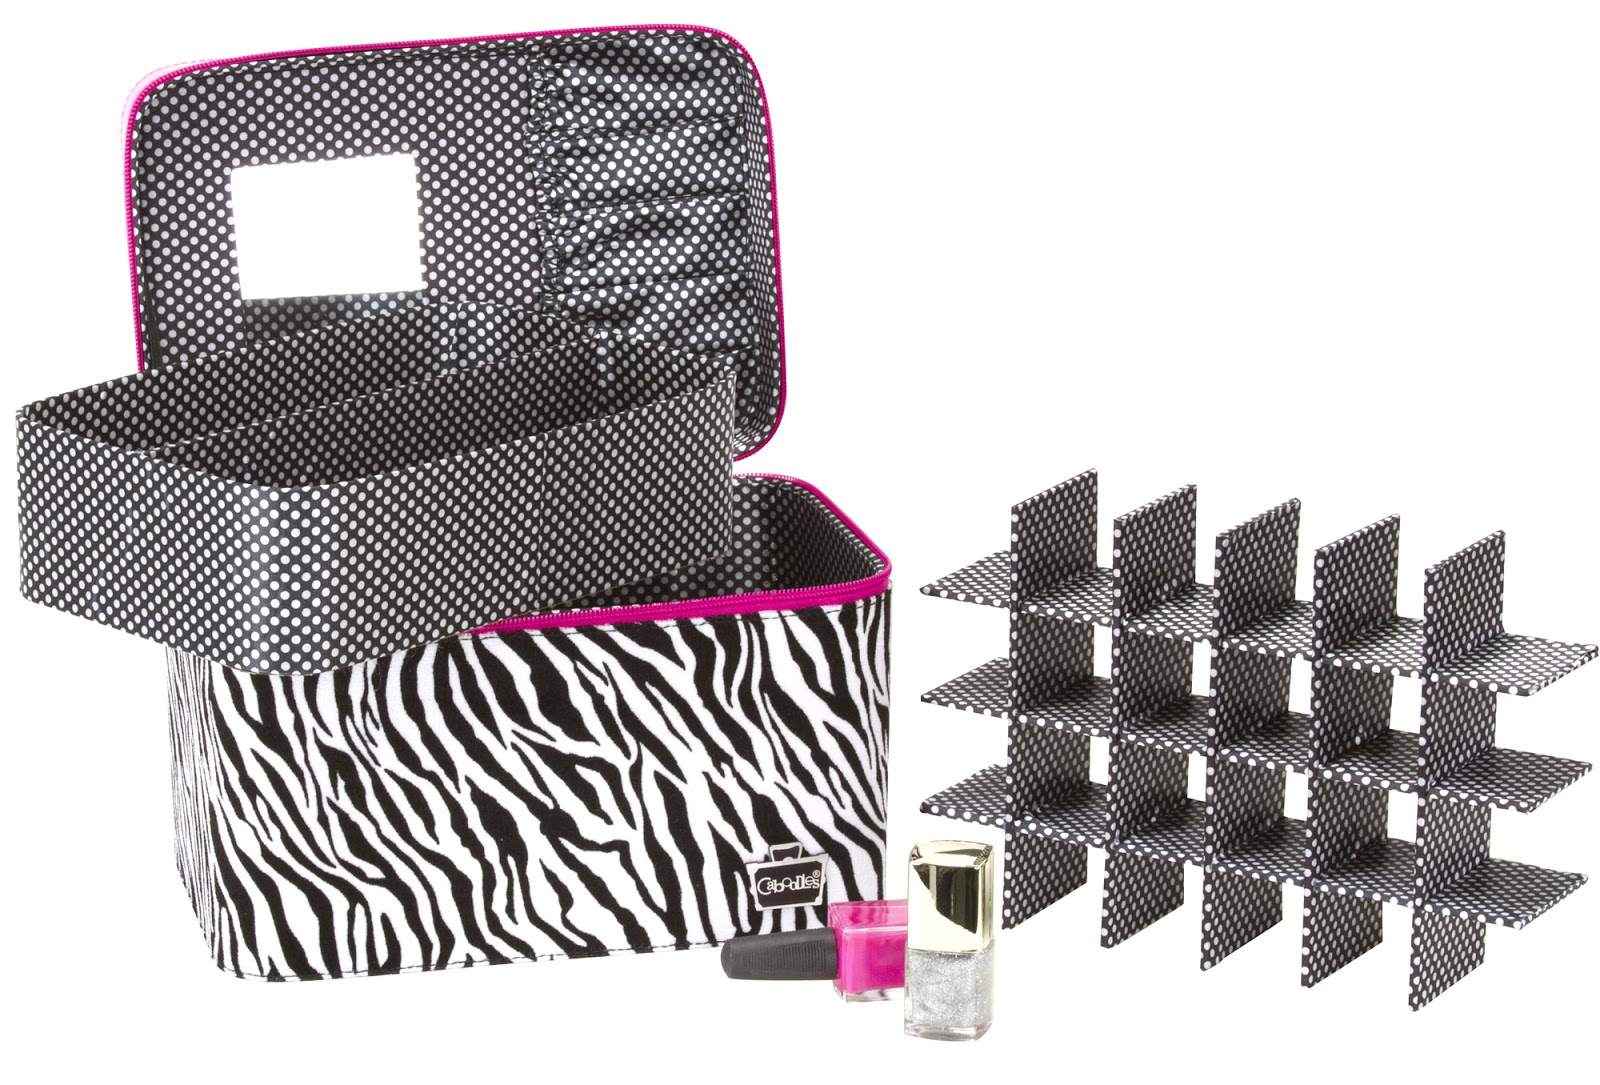 Chalkboard Nails News: Caboodles Launches New Products Including ...